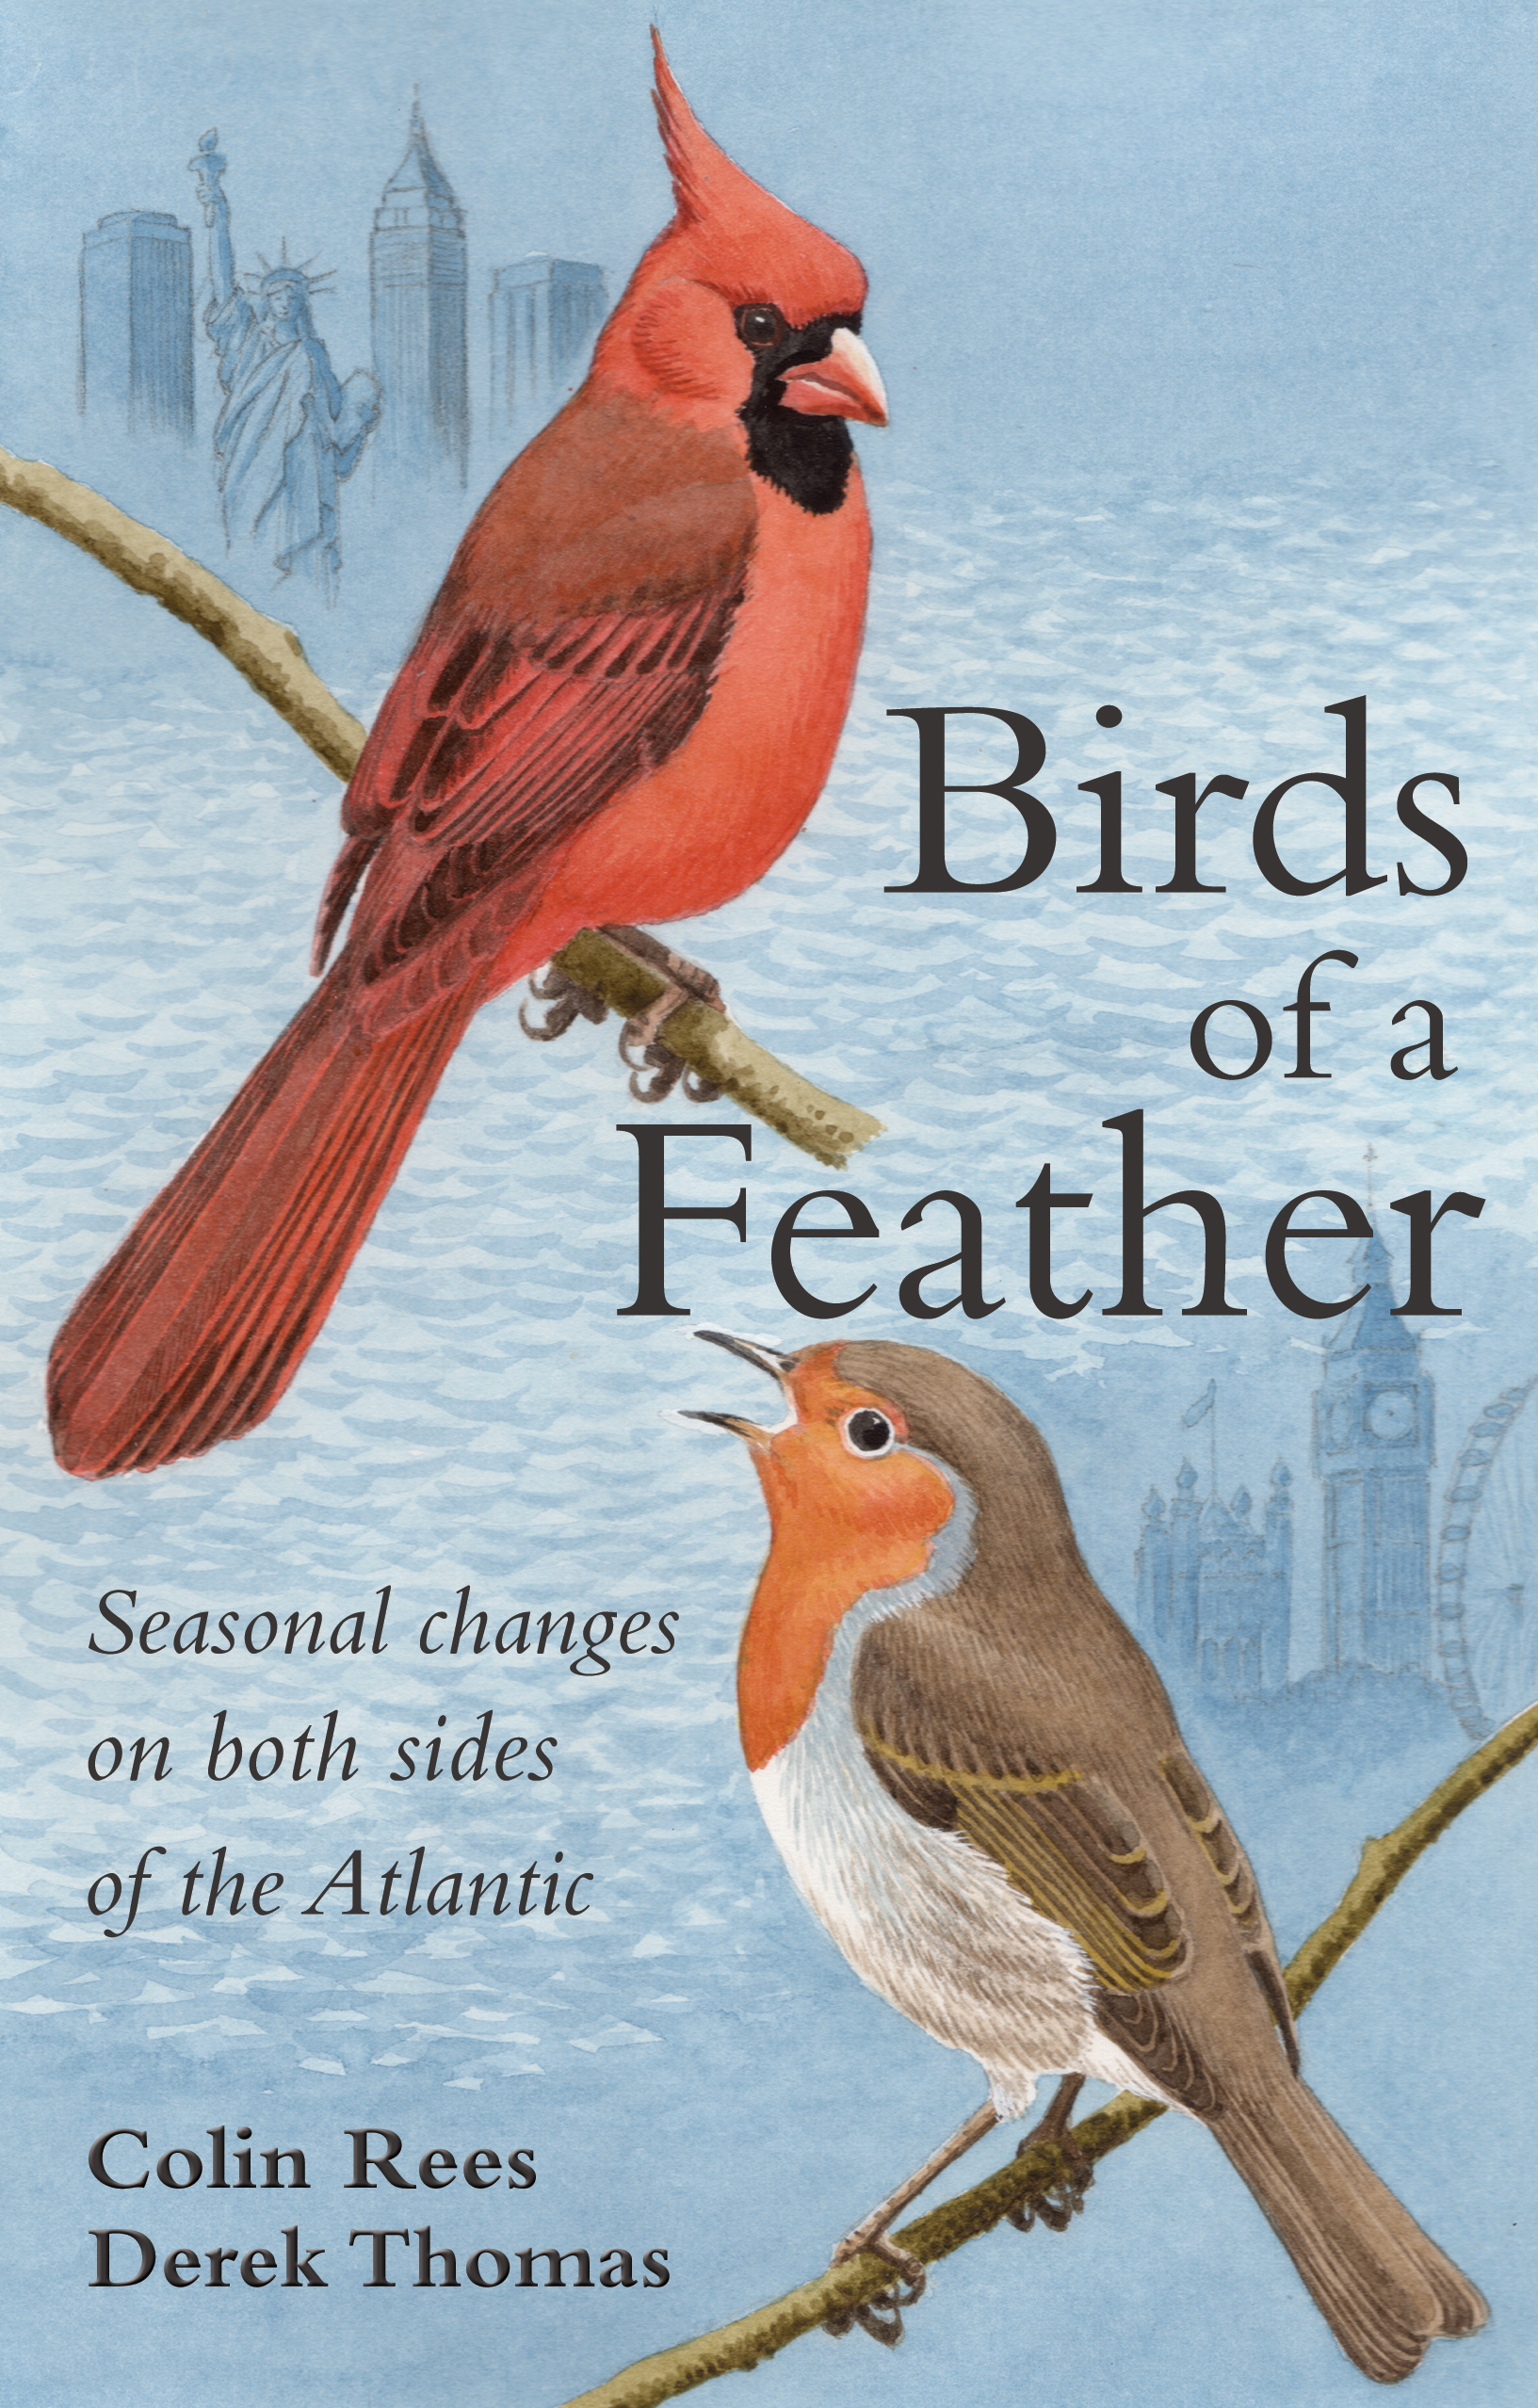 Birds of a Feather Seasonal Changes on both sides of the Atlantic